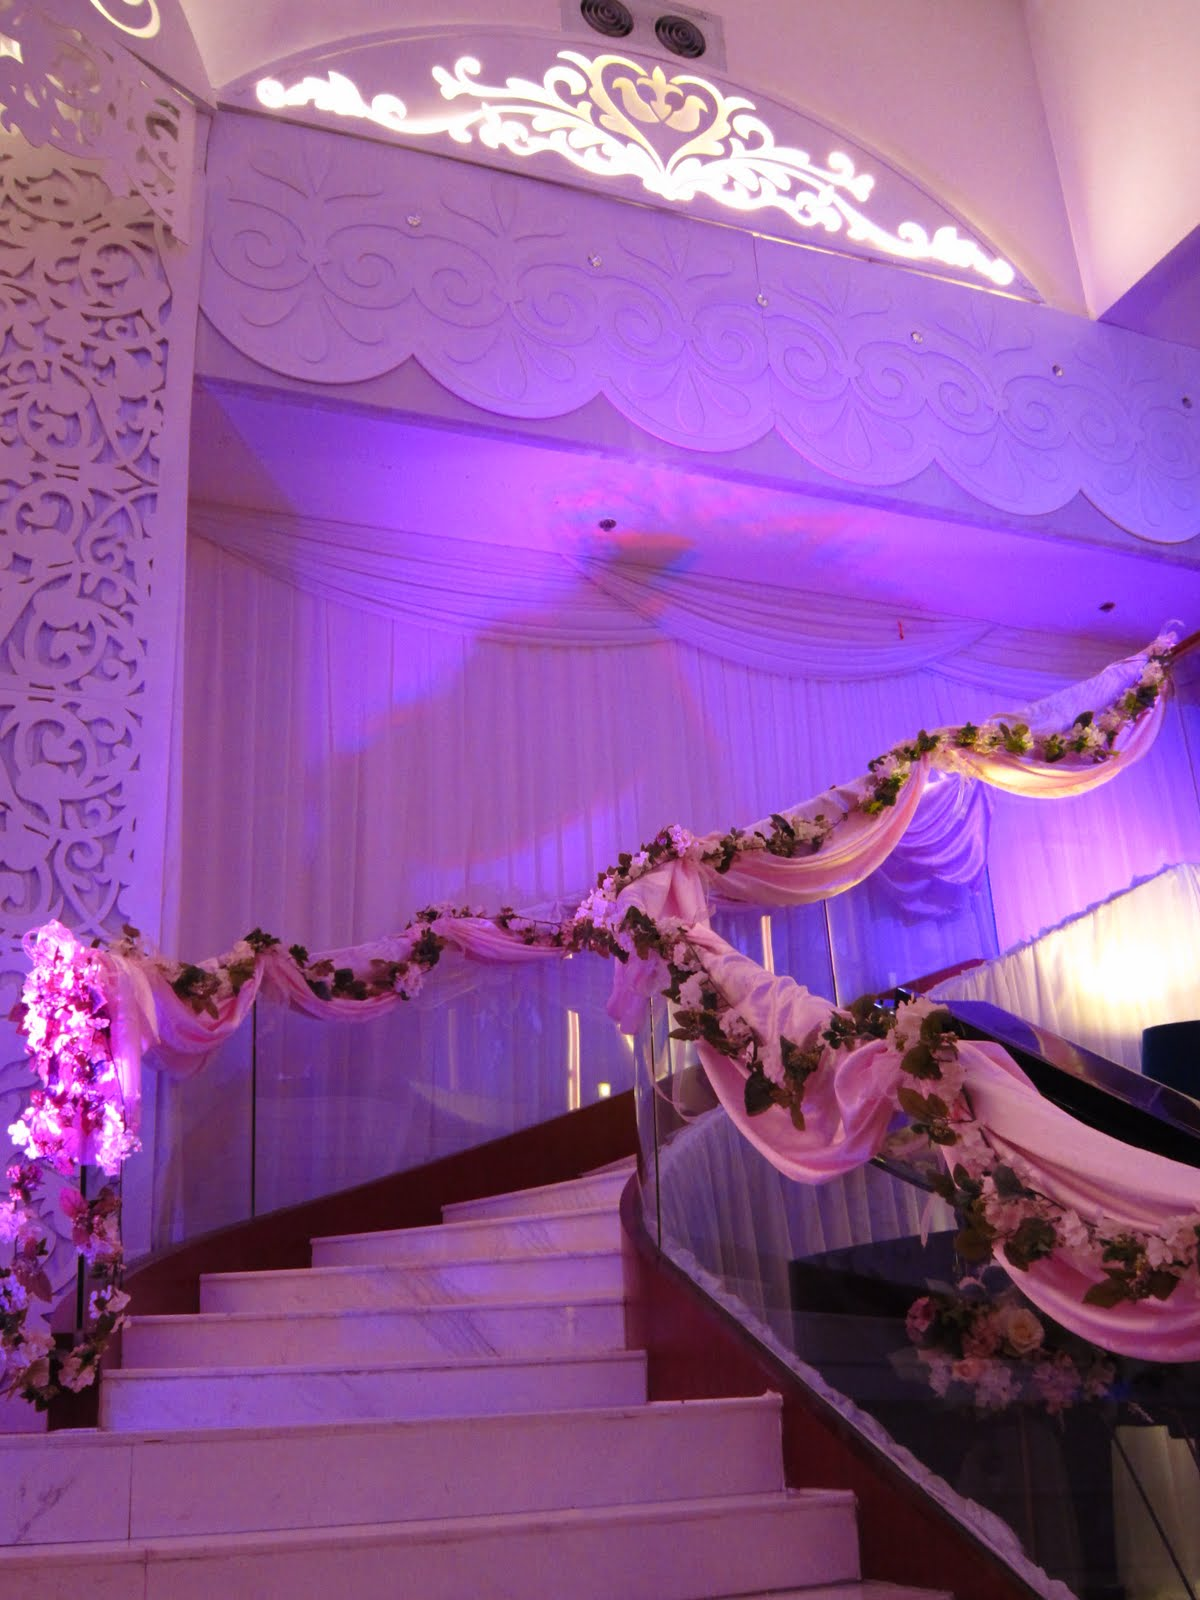 Decorate my wedding romantic decoration wishahmon wedding creations november 2011 junglespirit Images